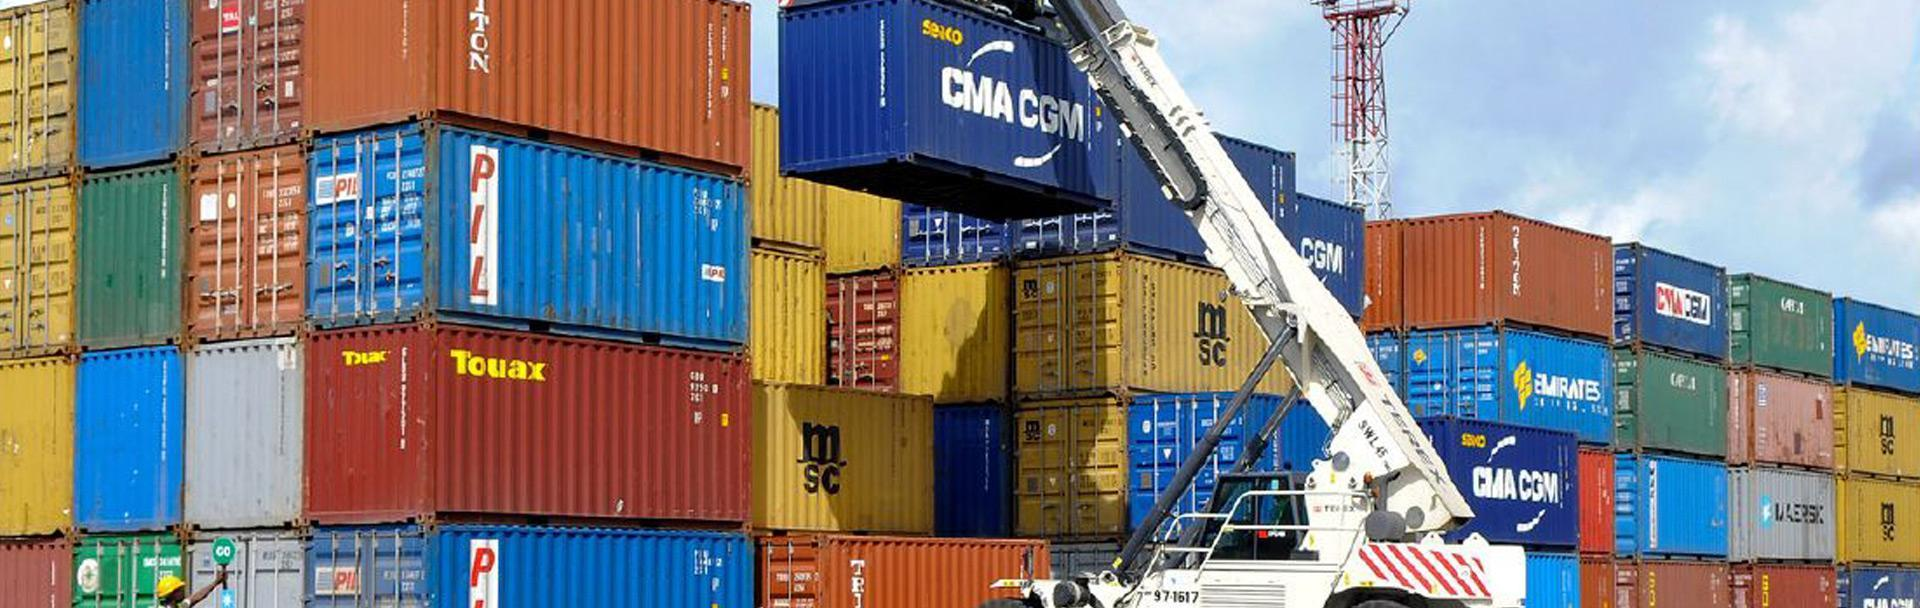 Container depot operations solutions